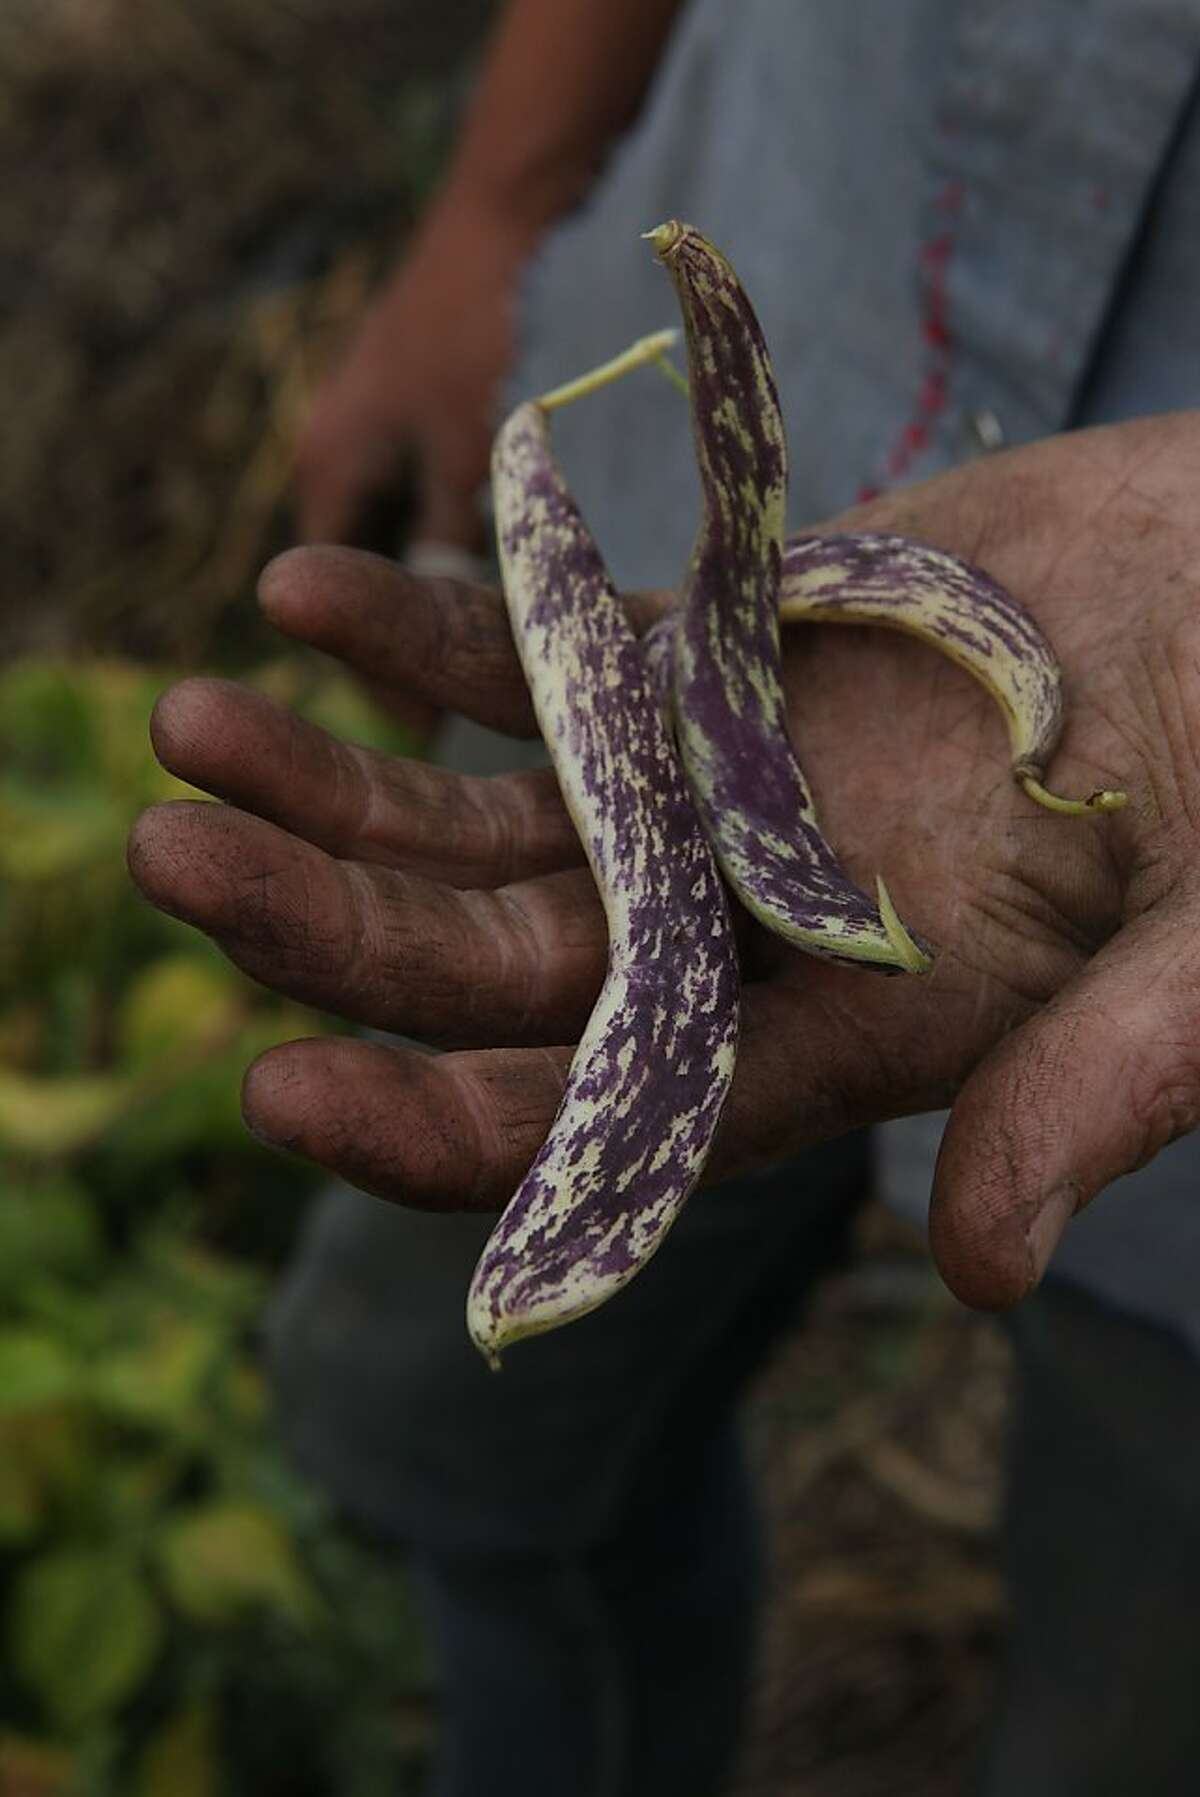 Kristen Leach shows asian string beans which she grows at Sunol Agricultural Park in Sunol, Calif., on Wednesday, October 31, 2012. She cultivates heritage crops for korean restaurant Namu Gaji.